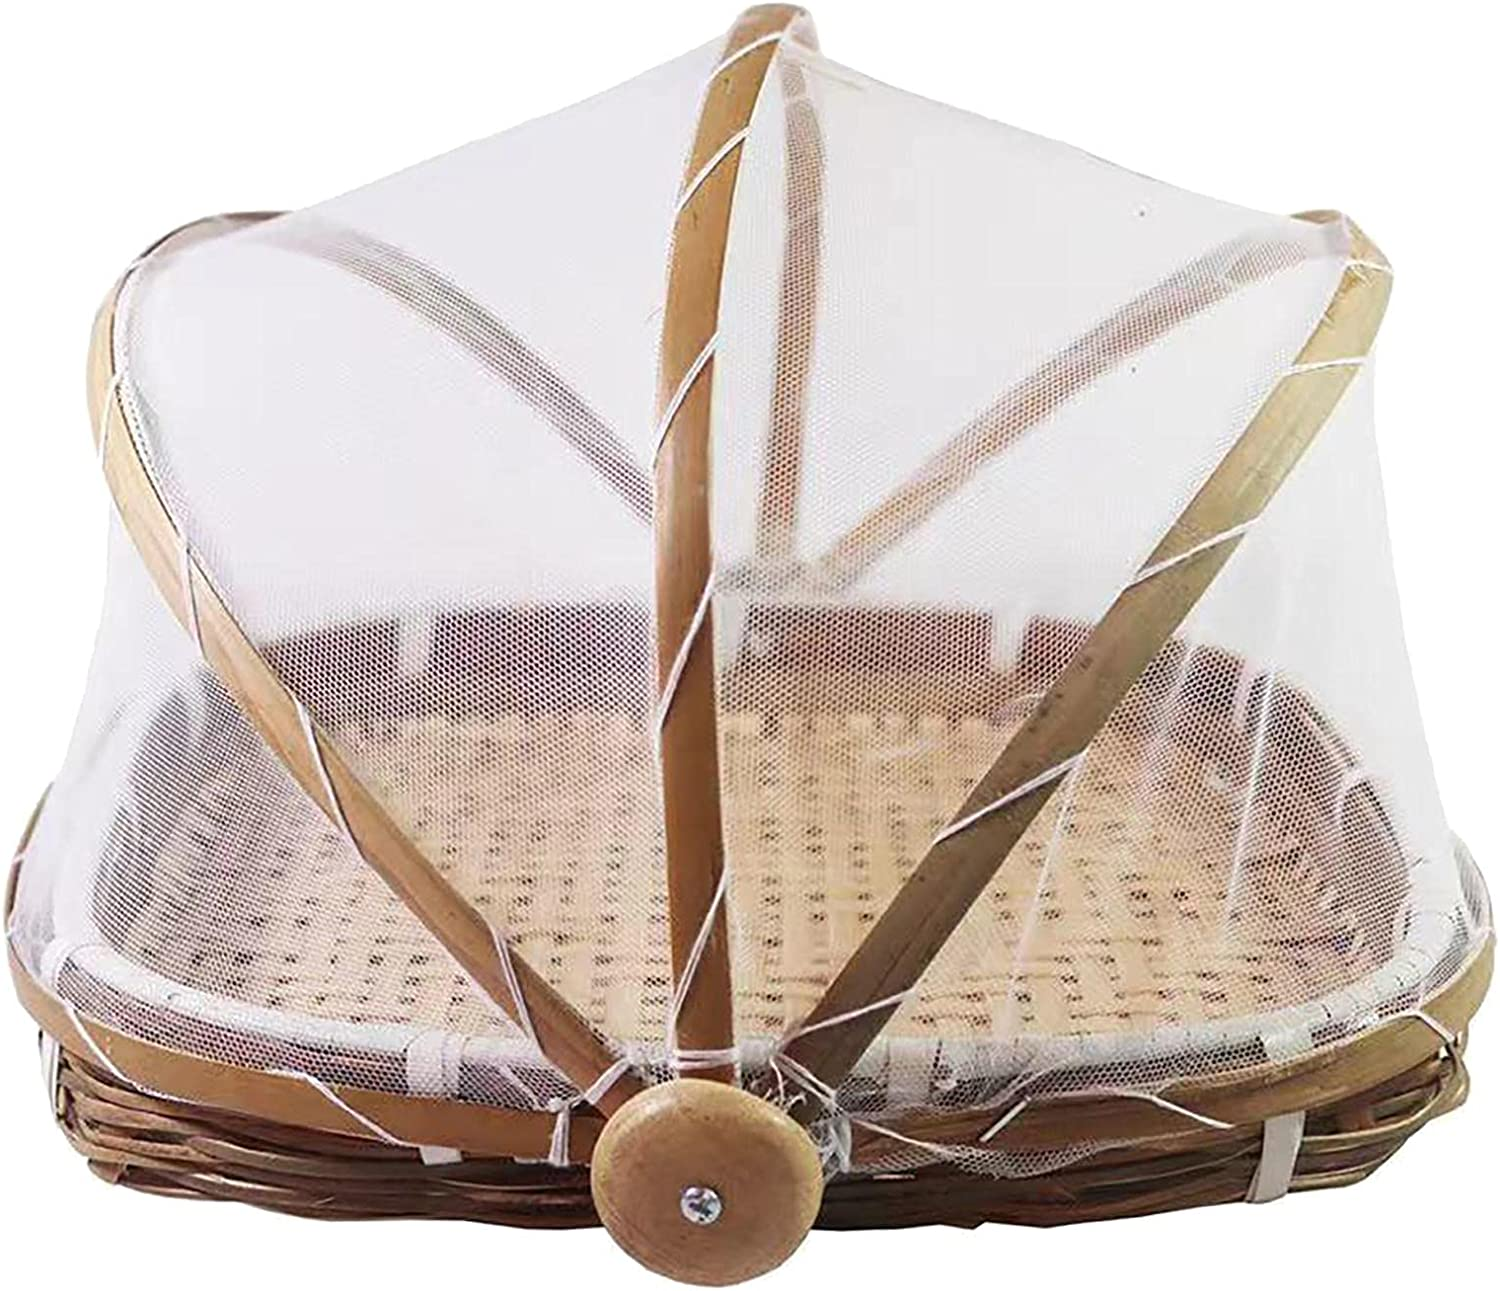 Food Serving Tent Basket Dust Free shipping on posting reviews - Max 71% OFF Bamboo-Serving-Basket Hand-Woven